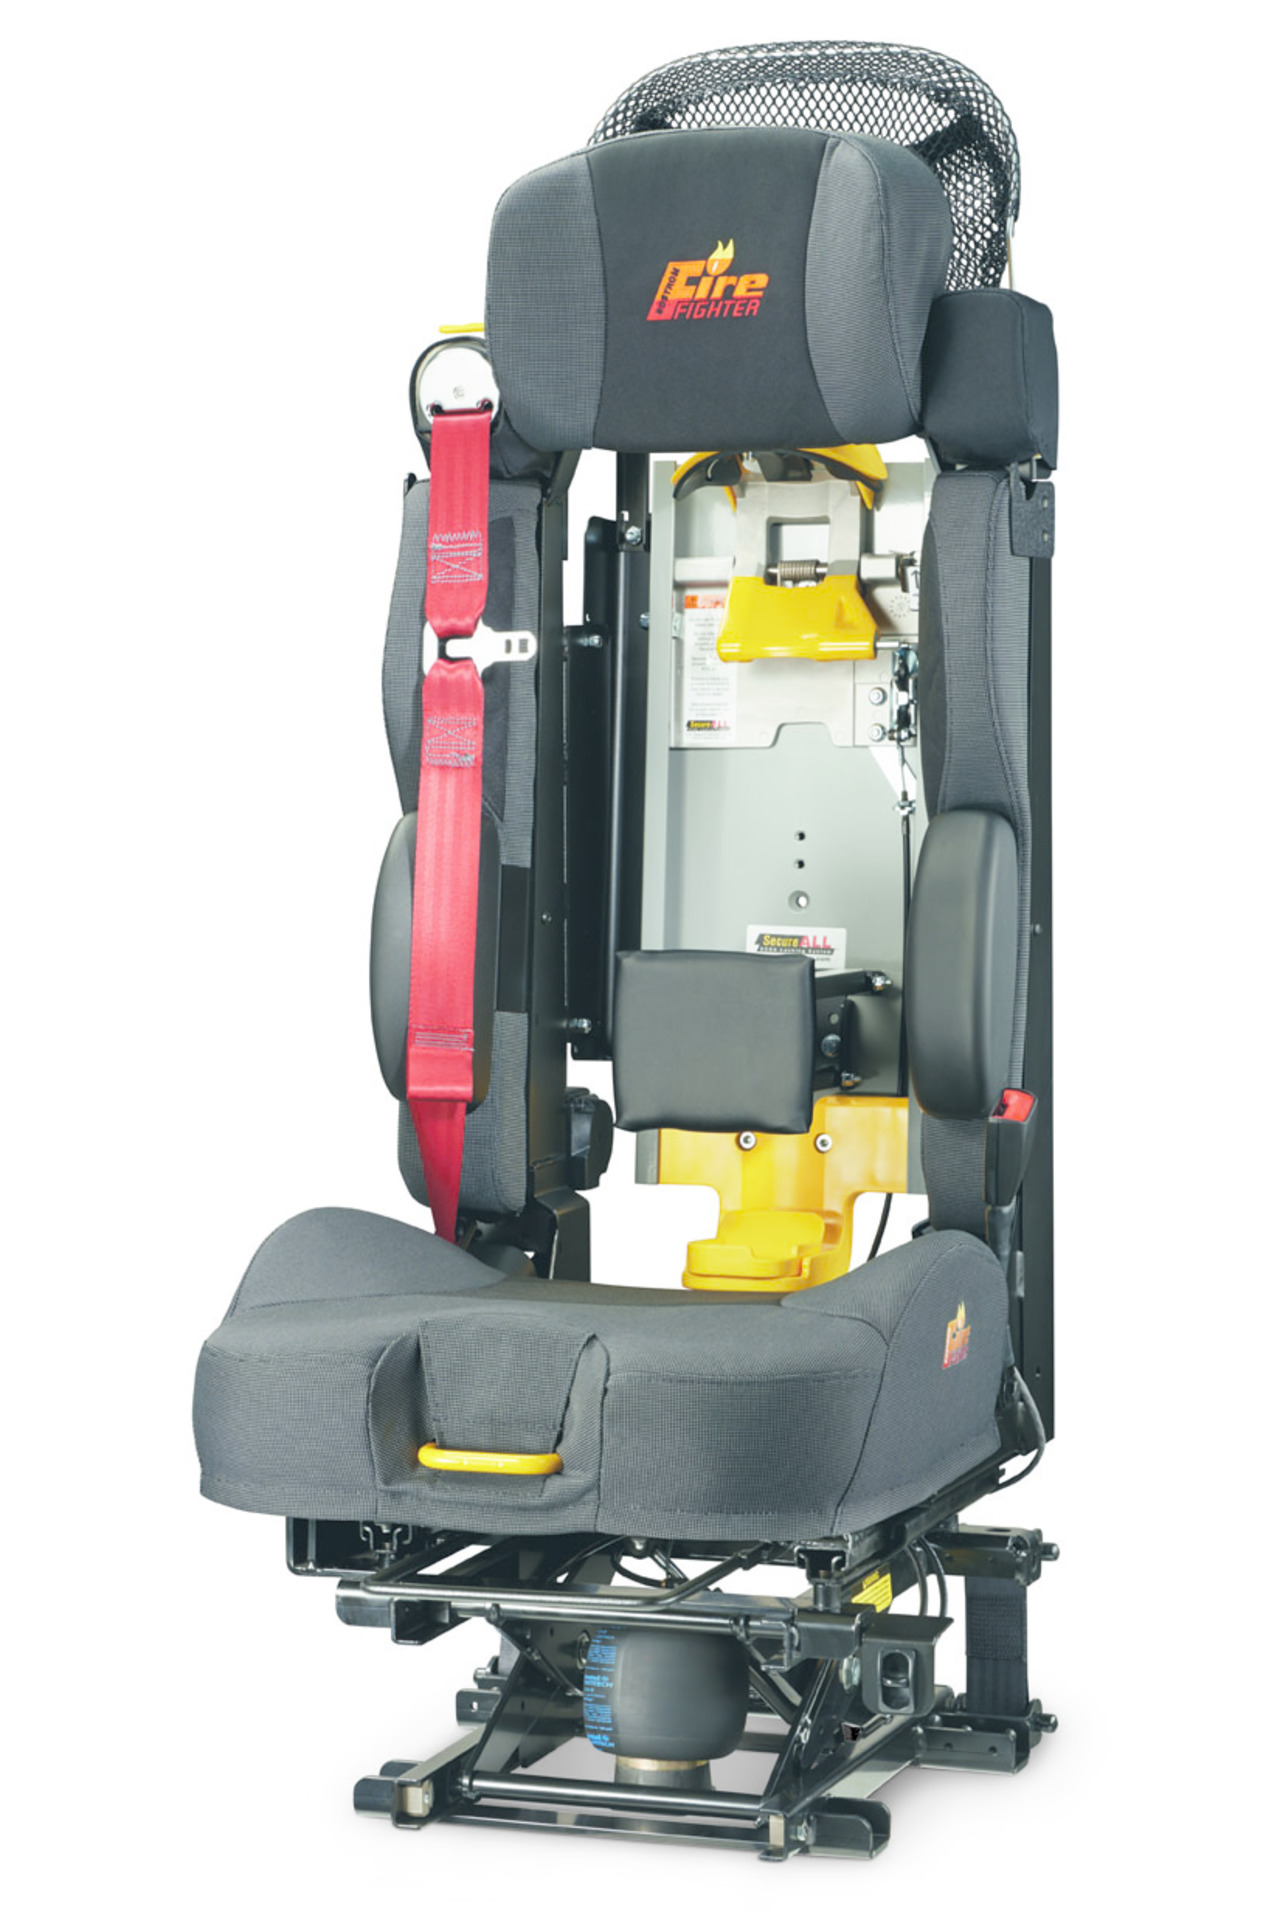 Selecting Fire Apparatus Seats & Cab Seating - Fire Apparatus Products